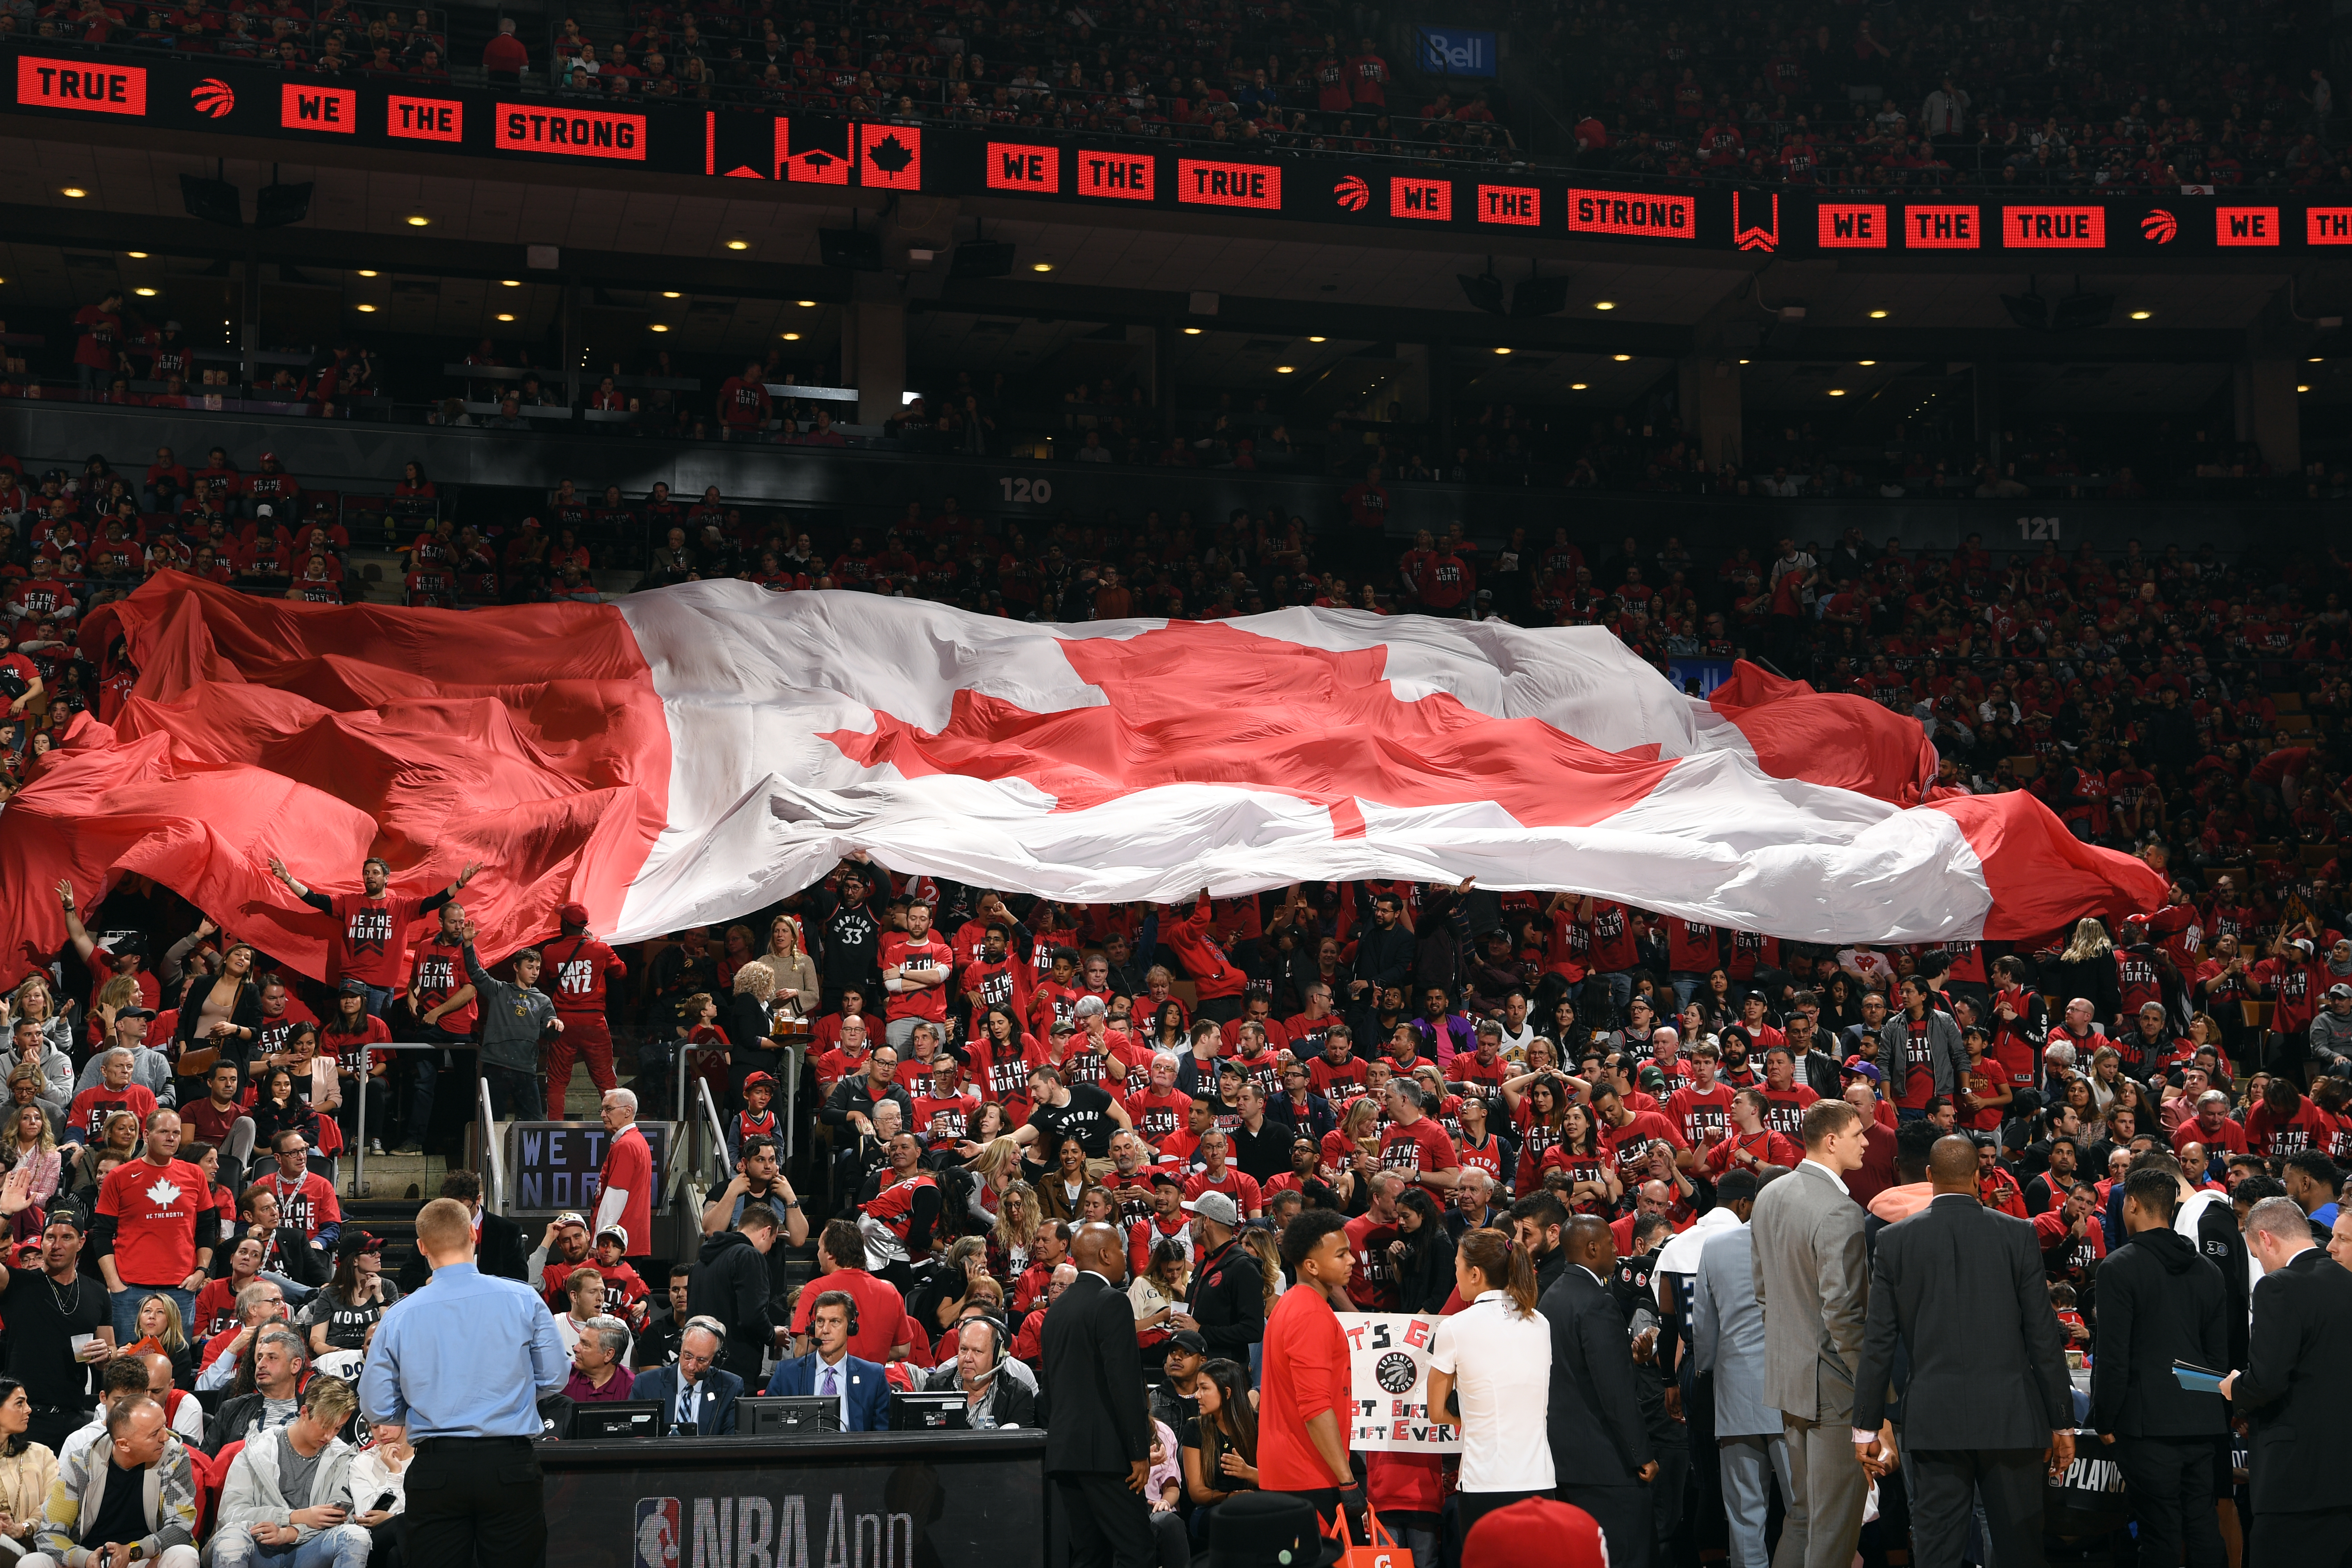 A view of fans holding the Canadian flag during Game One of Round One of the 2019 NBA Playoffs on April 13, 2019 at the Scotiabank Arena in Toronto, Ontario, Canada.